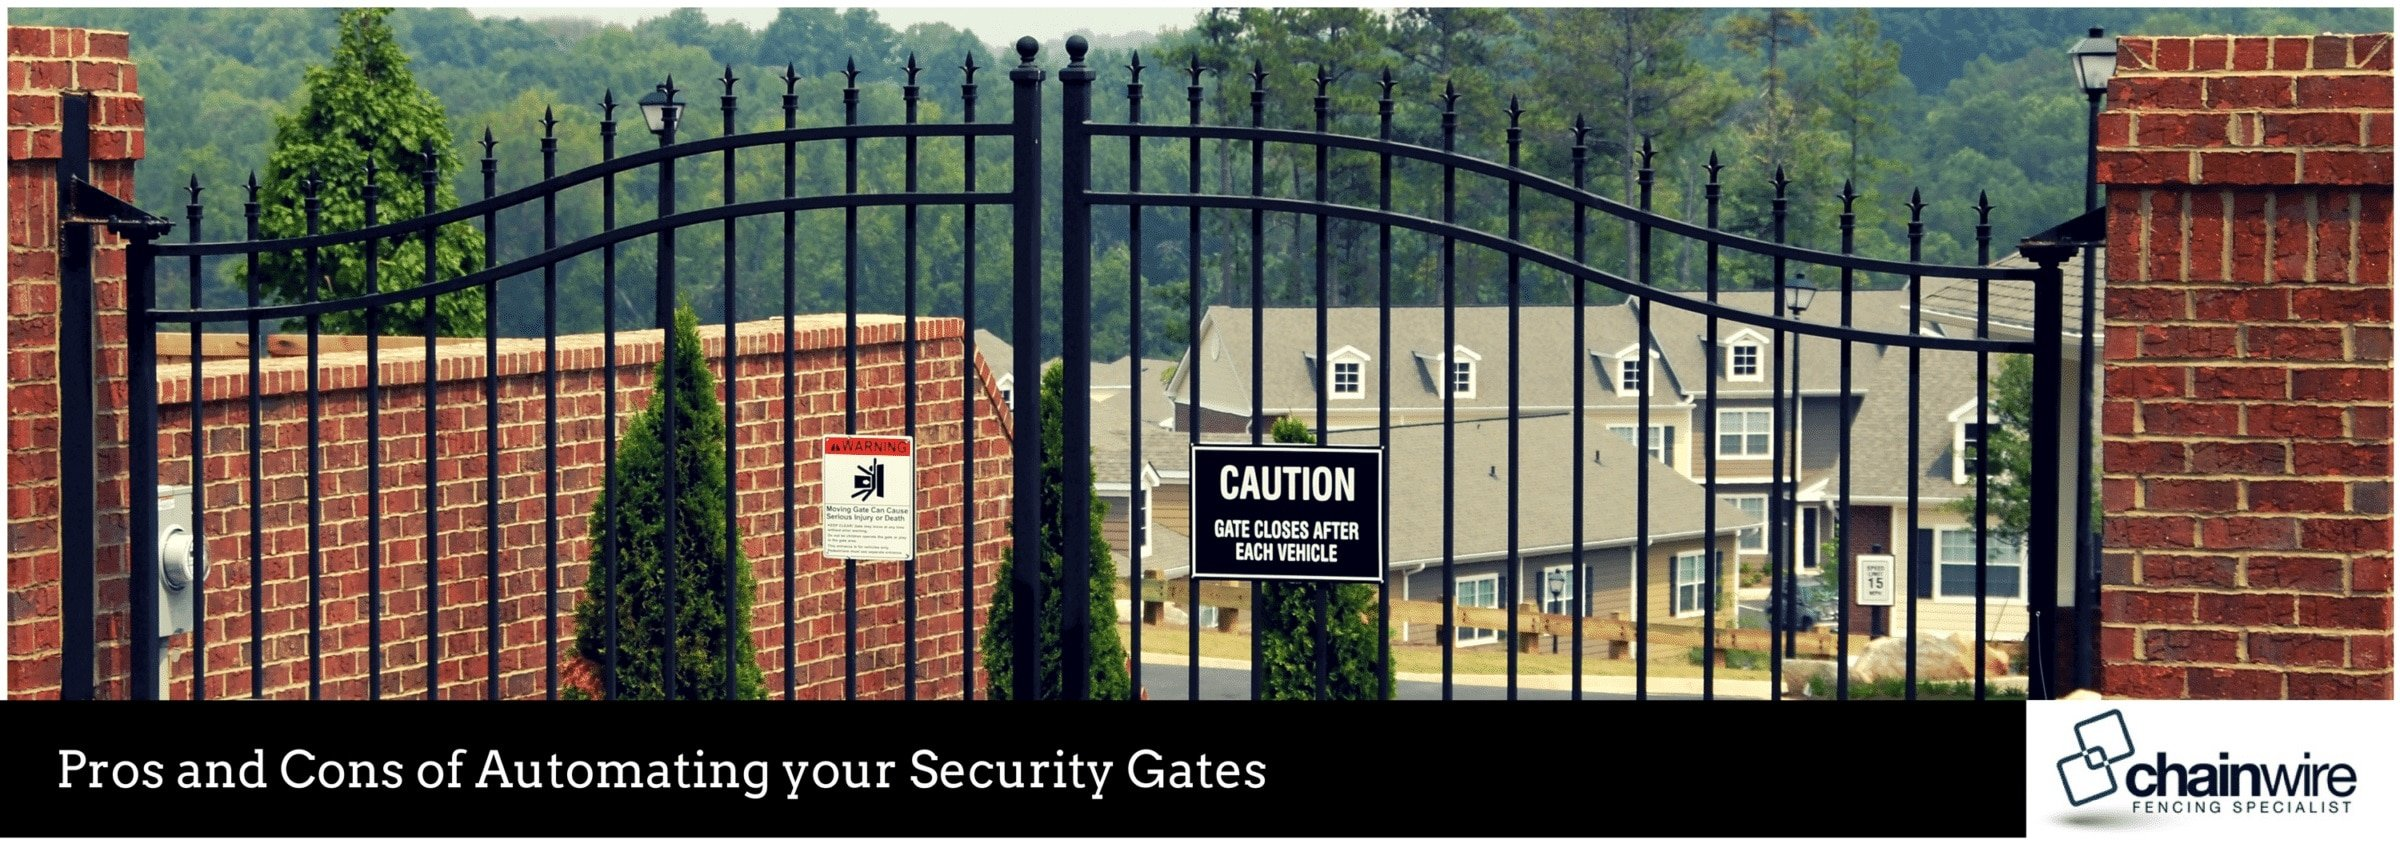 Pros and Cons of Automating your Security Gates - Fencing Specialists